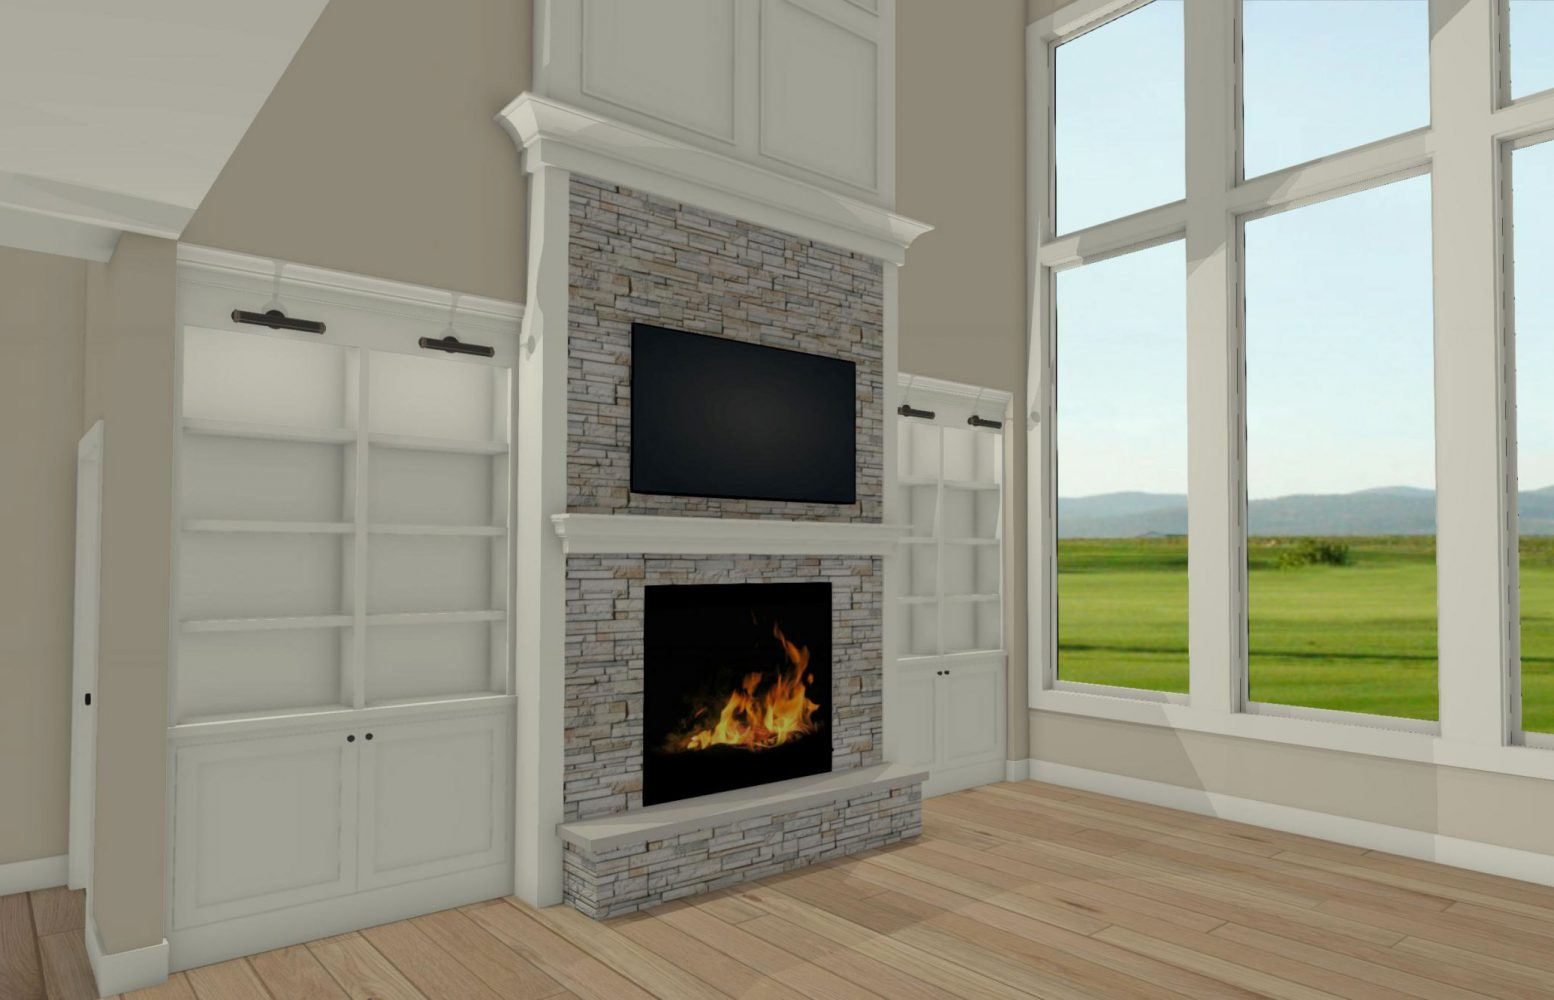 Wood Wall Behind Tv Design Dilemmas How To Design A Great Room Fireplace Wall With